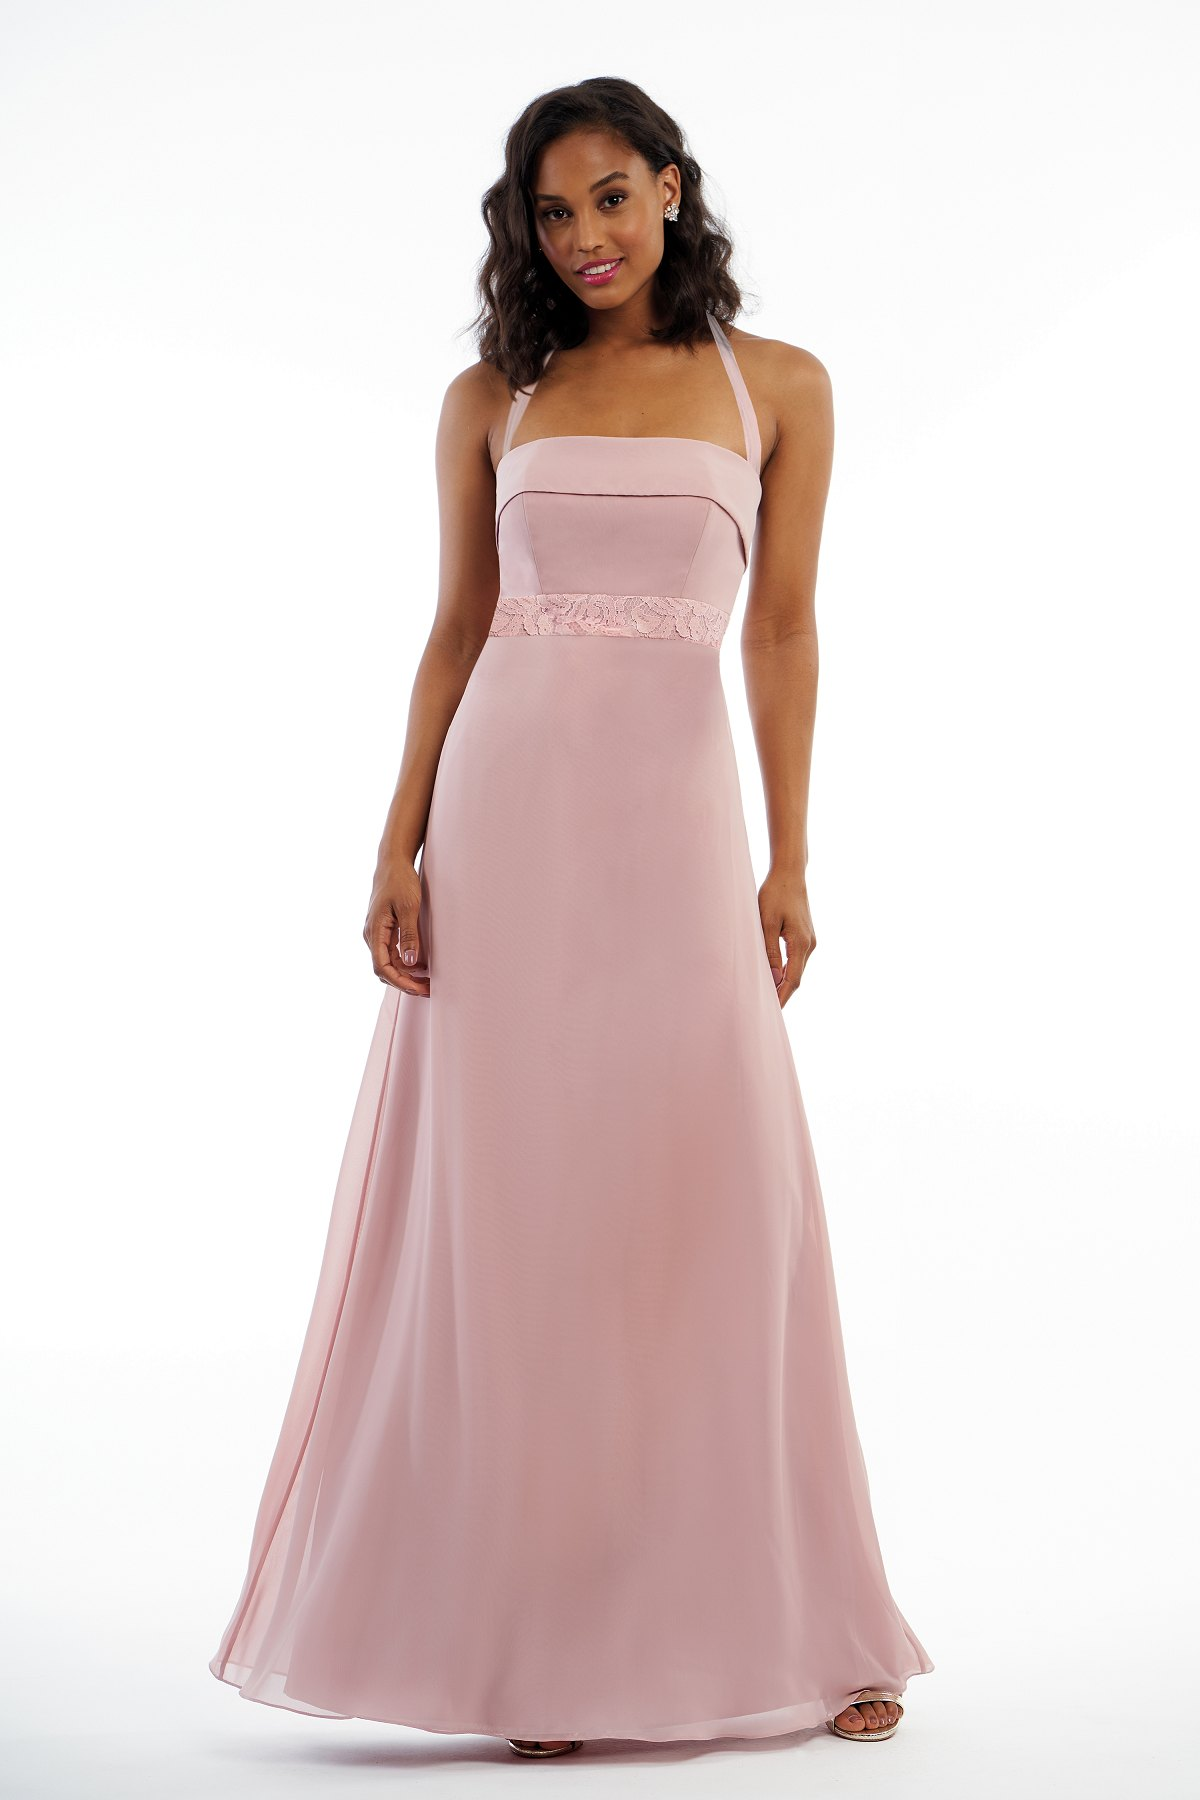 P216009 -  Pretty charlotte chiffon floor length bridesmaid dress with a straight neckline and halter straps that create a bow on the back. Detailed lace on the bodice to complete the look.    Available in 18 colors